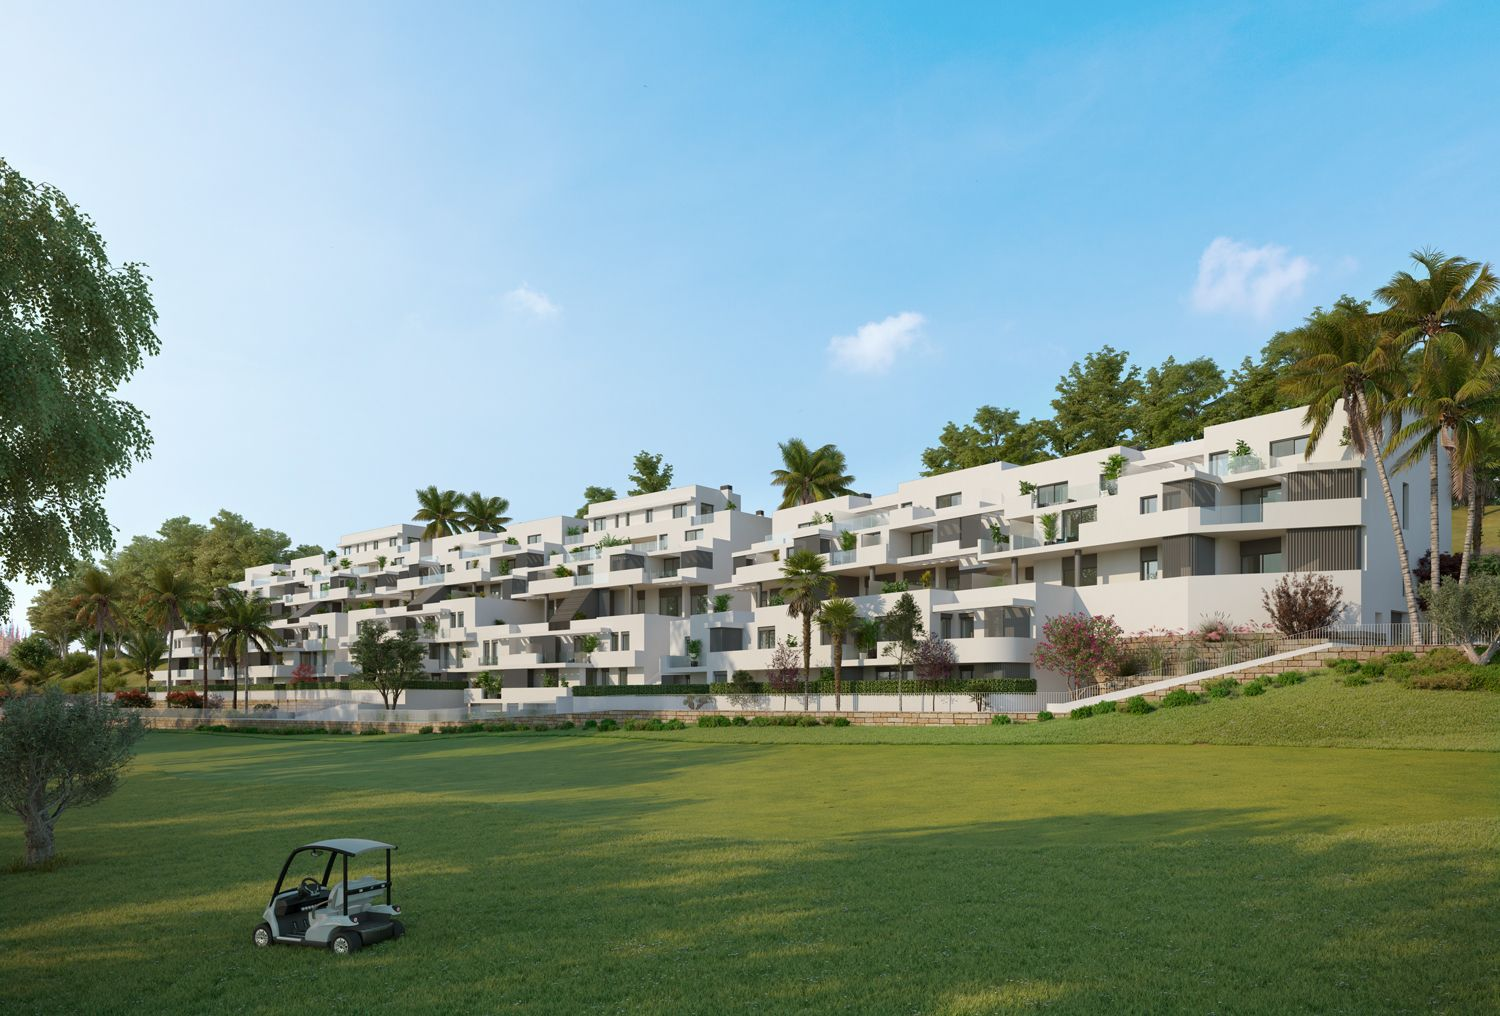 Apartments with views over golf courses in Estepona 26